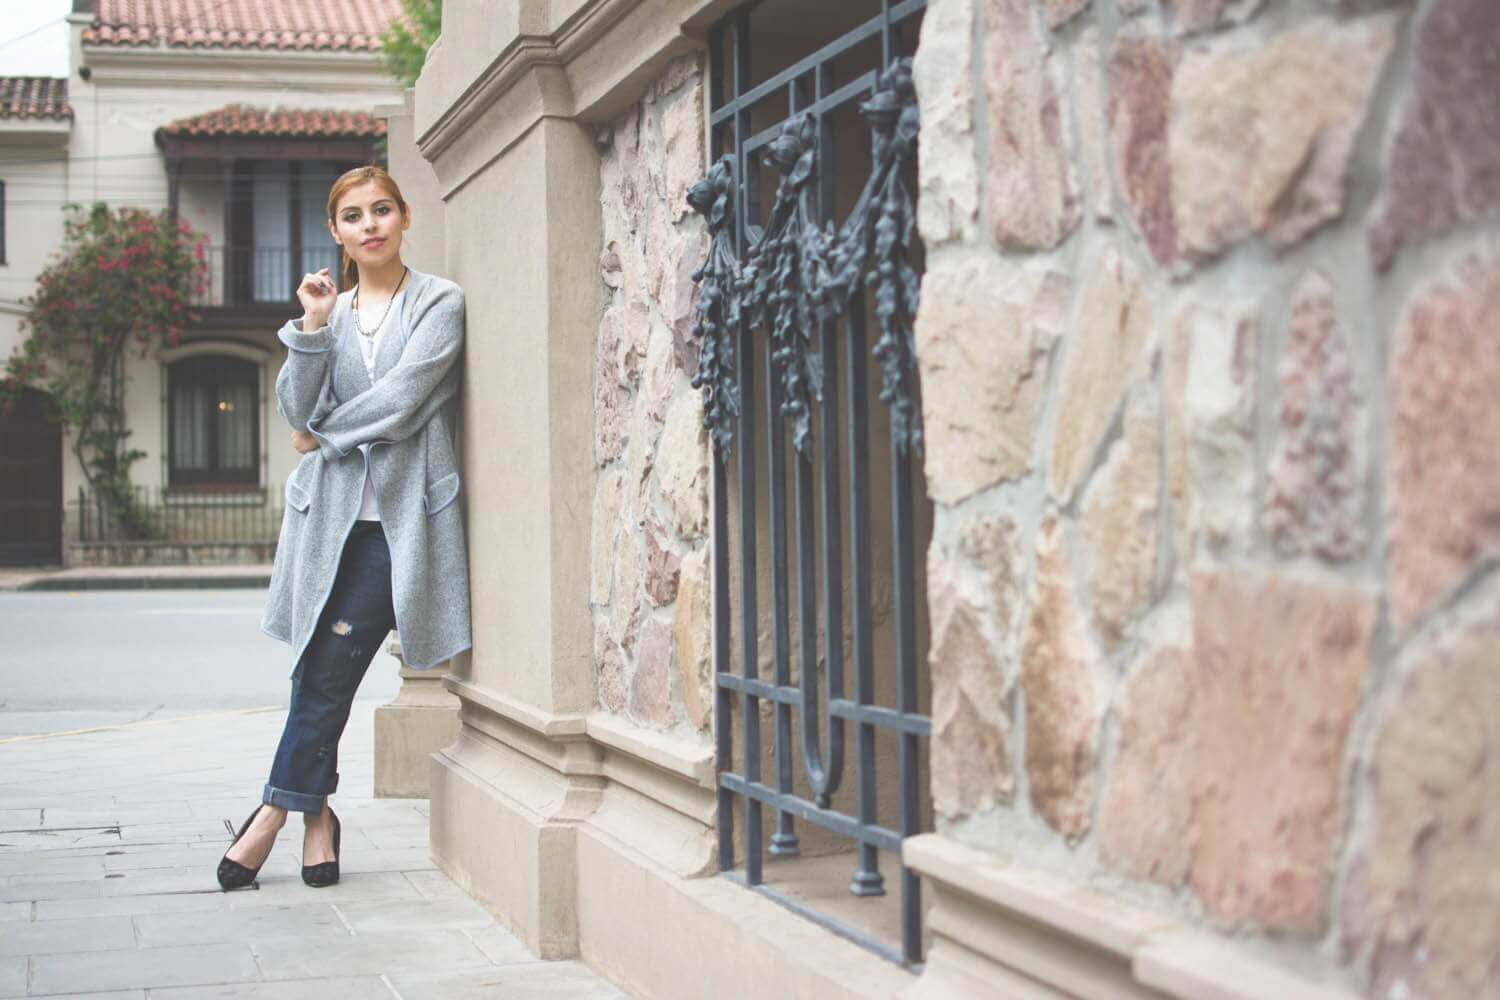 romwe-grey-maxi-cardigan-oversized-coat-boyfriend-jeans-zaful-black-stilettos-deborah-ferrero-winter-2017-trends-style-by-deb09